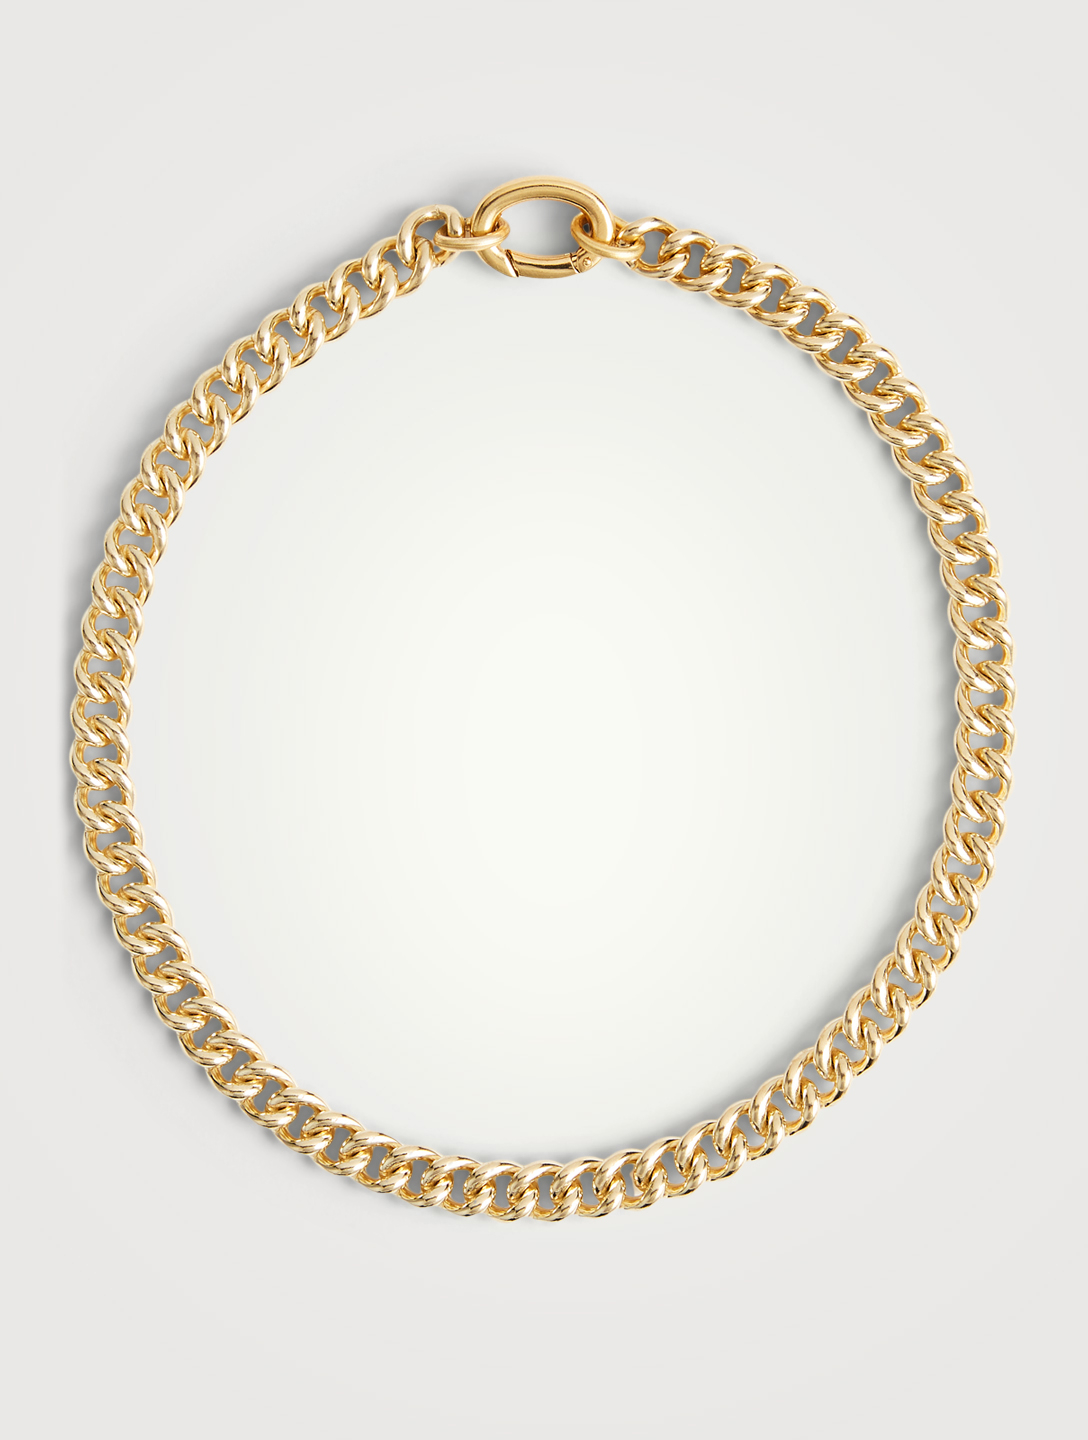 LAURA LOMBARDI 14K Gold Plated Presa Chain Necklace Women's Metallic